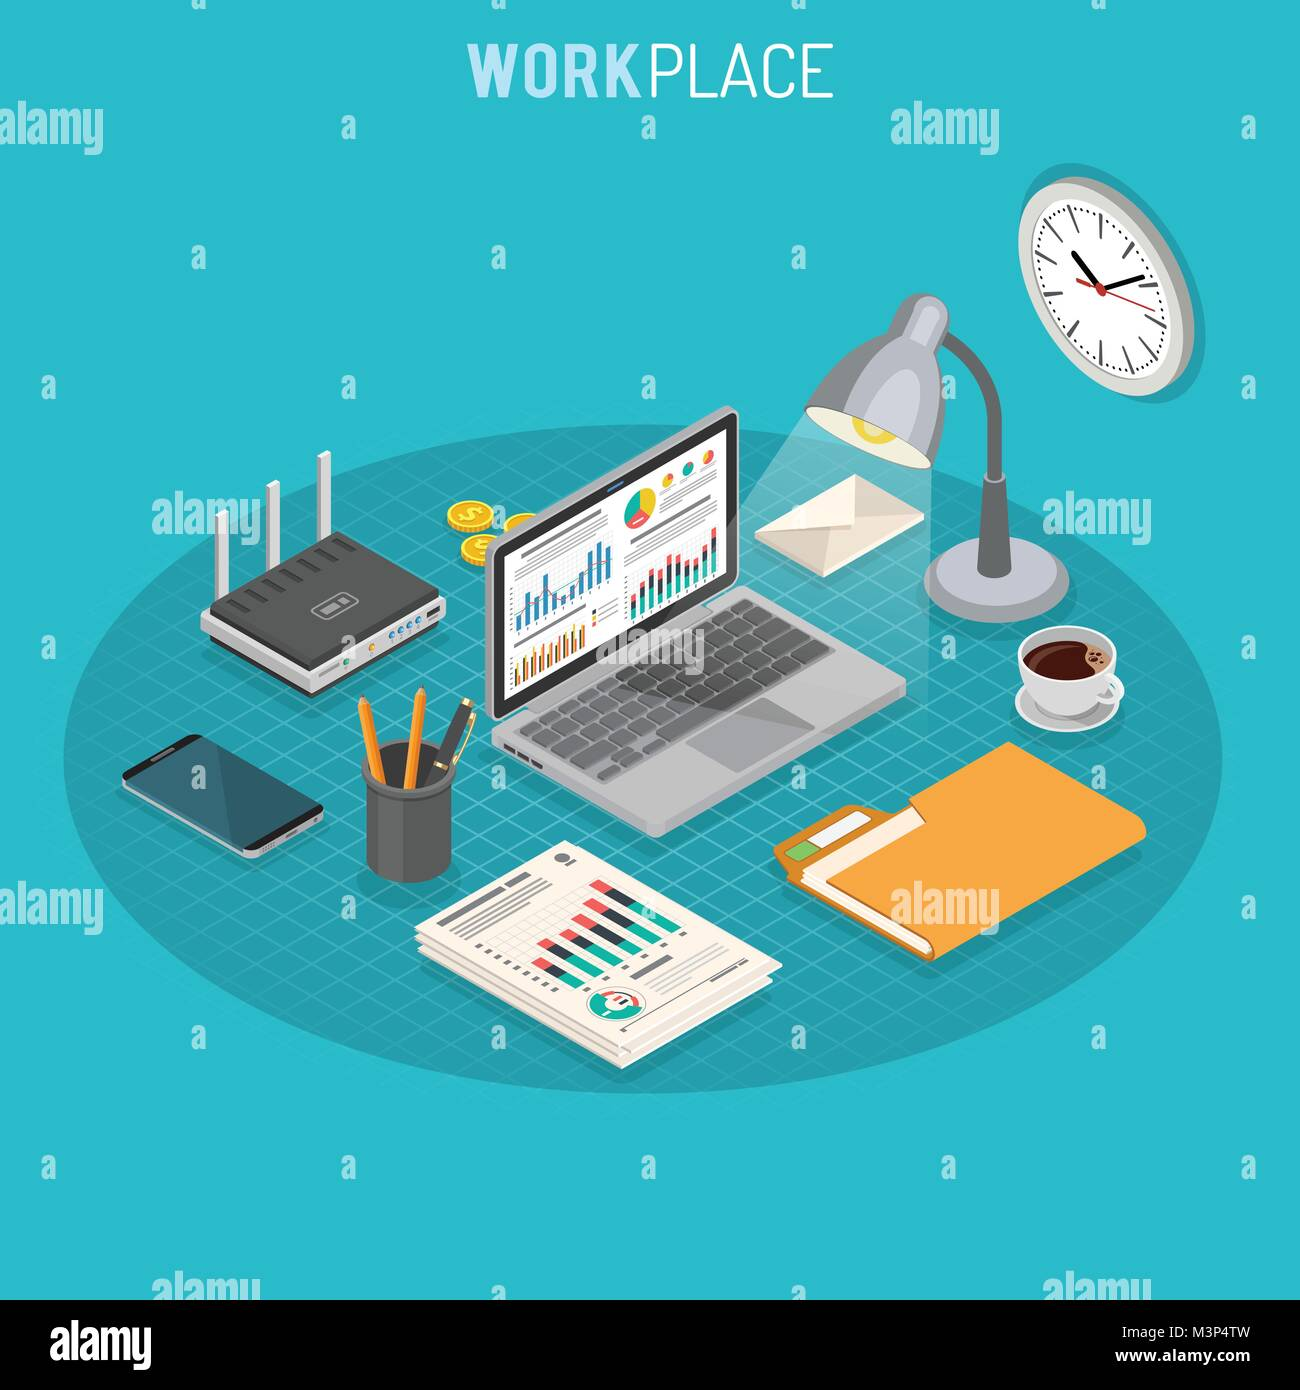 Workplace Isometric Concept - Stock Image